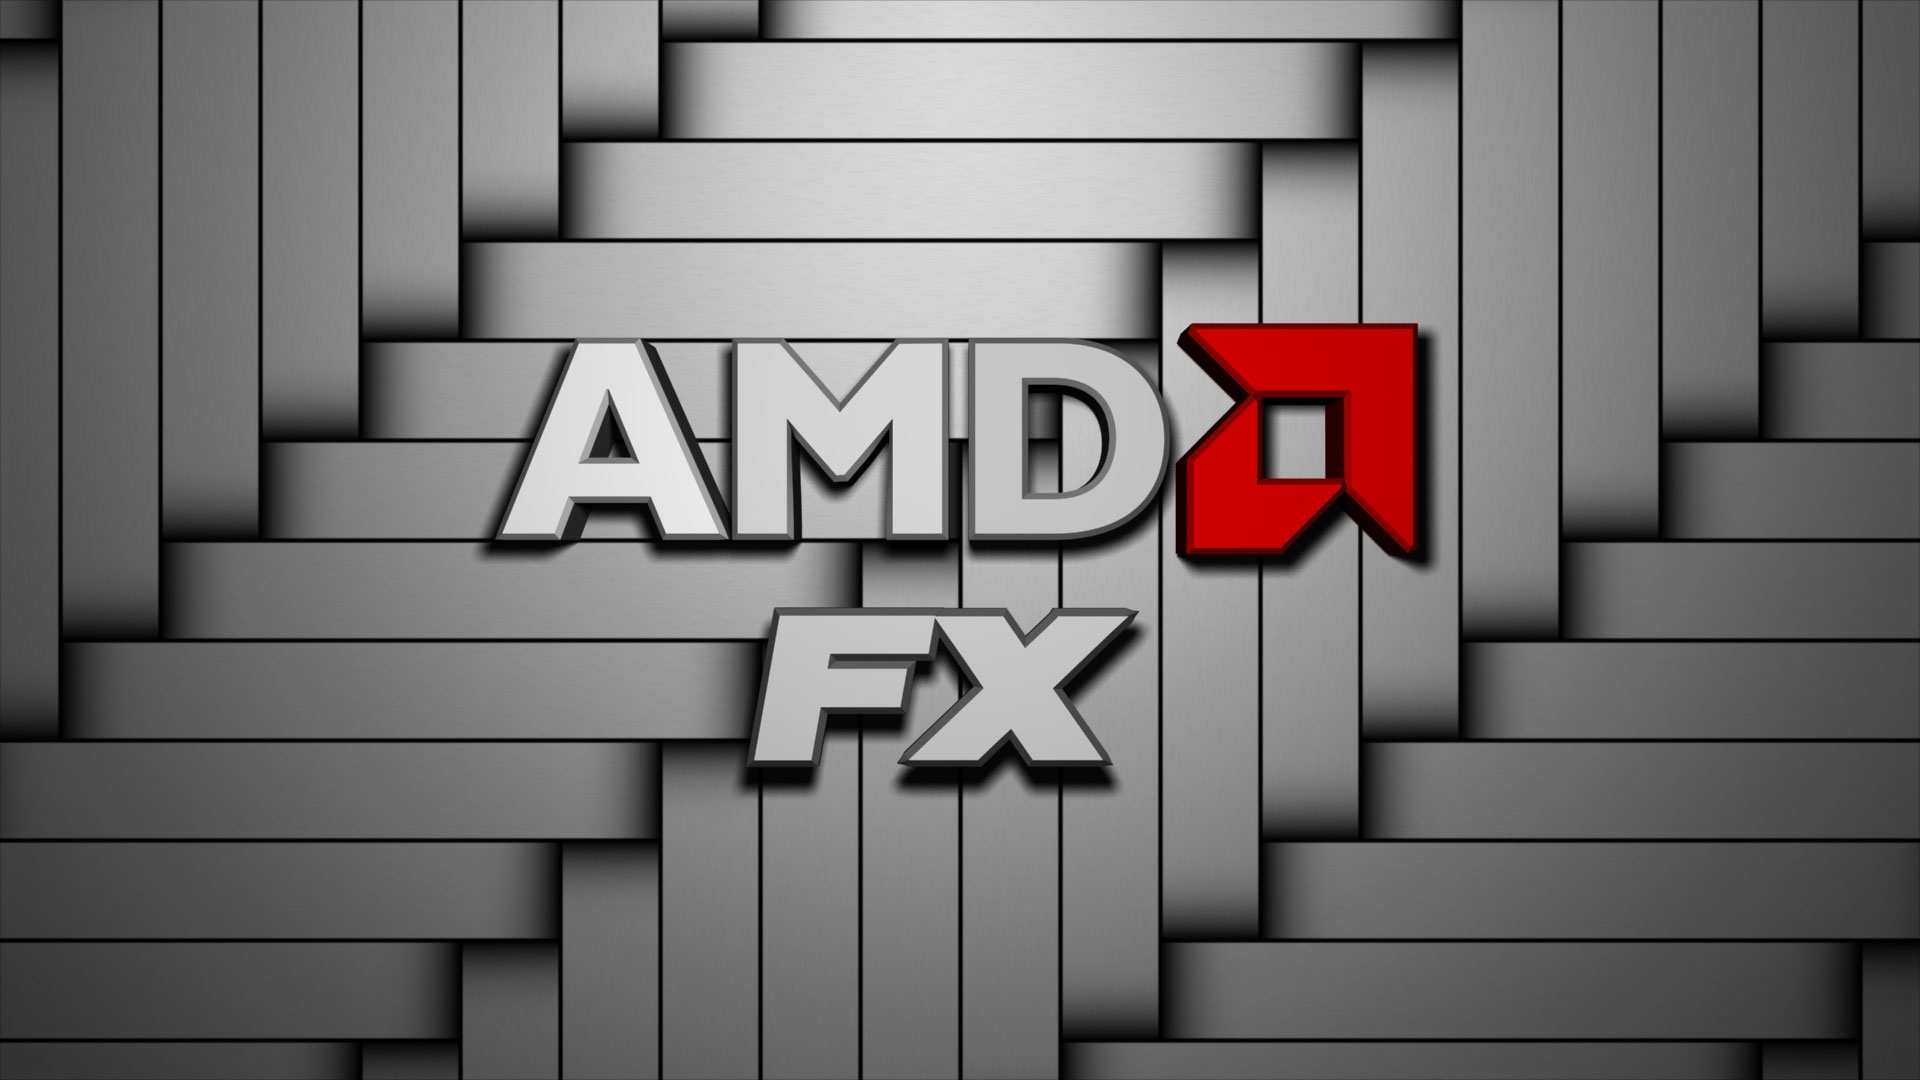 amd fx background by - photo #15